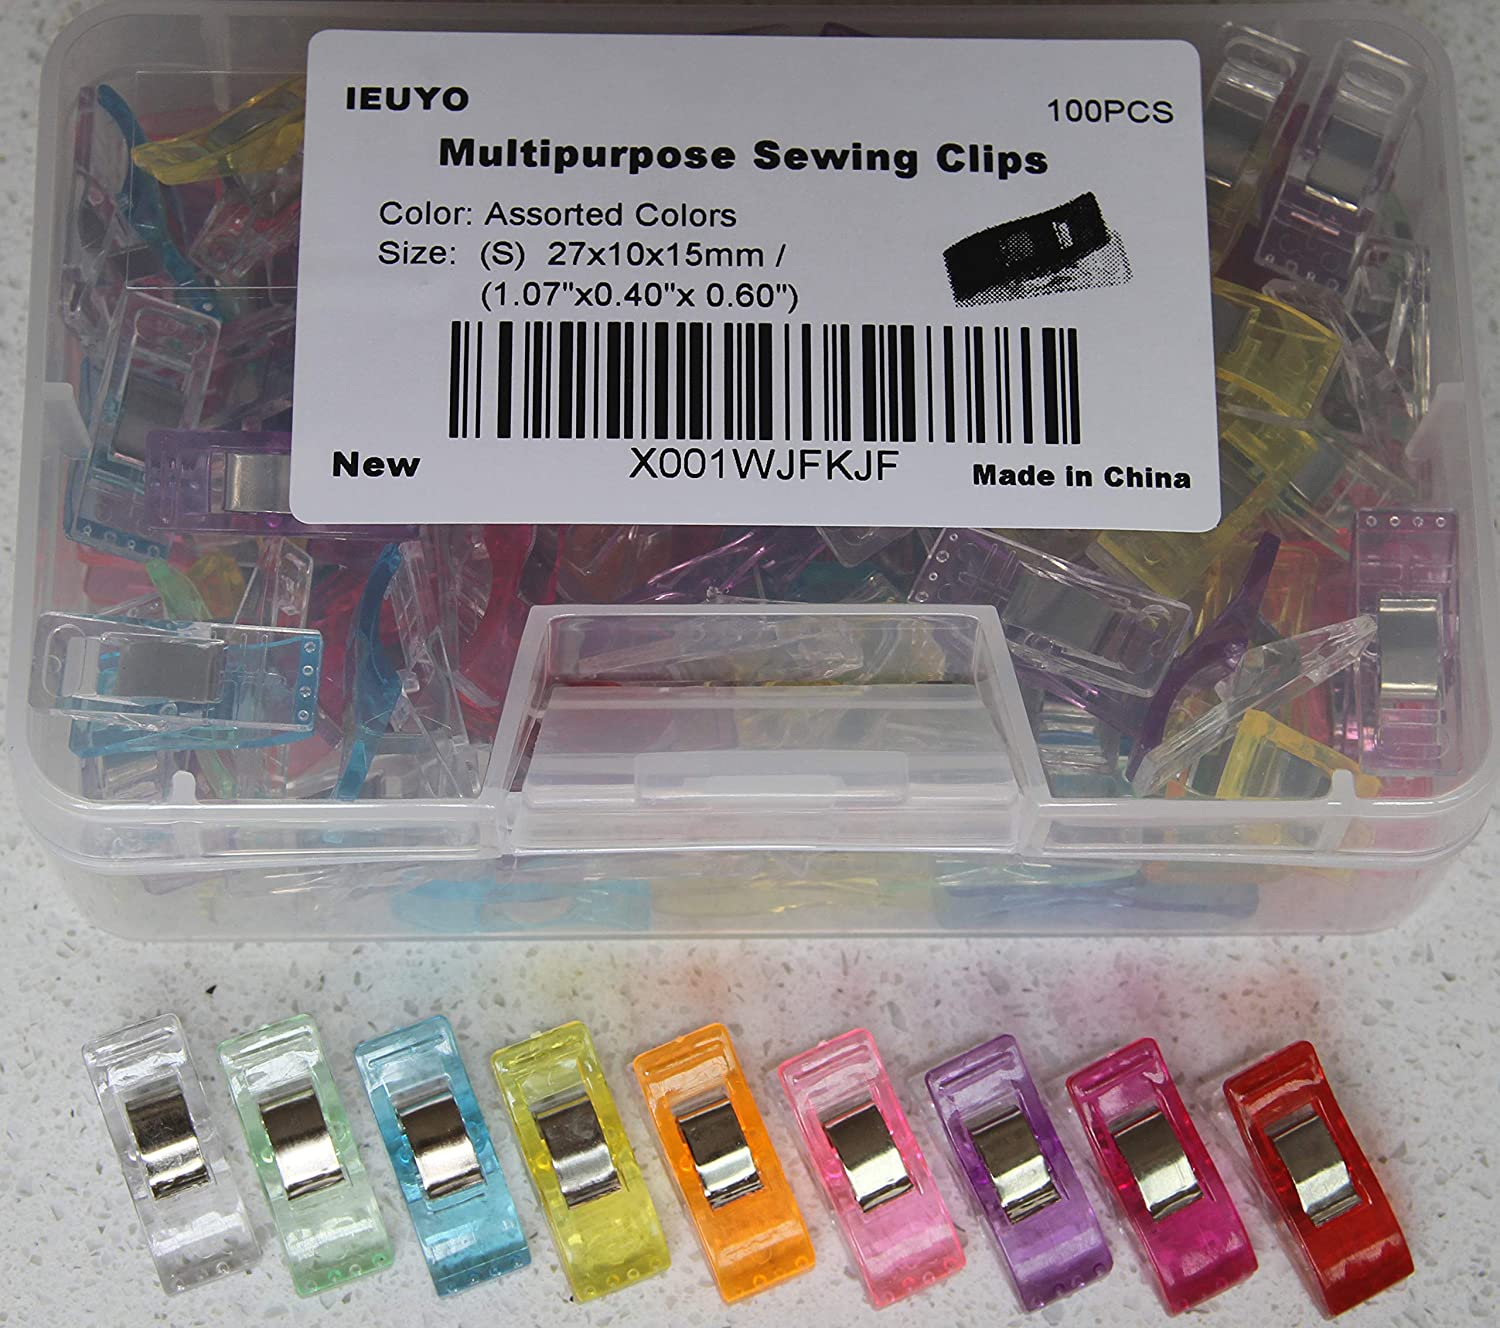 IEUYO 100PCS Sewing Clips, Multipurpose Craft Clips with PP Box